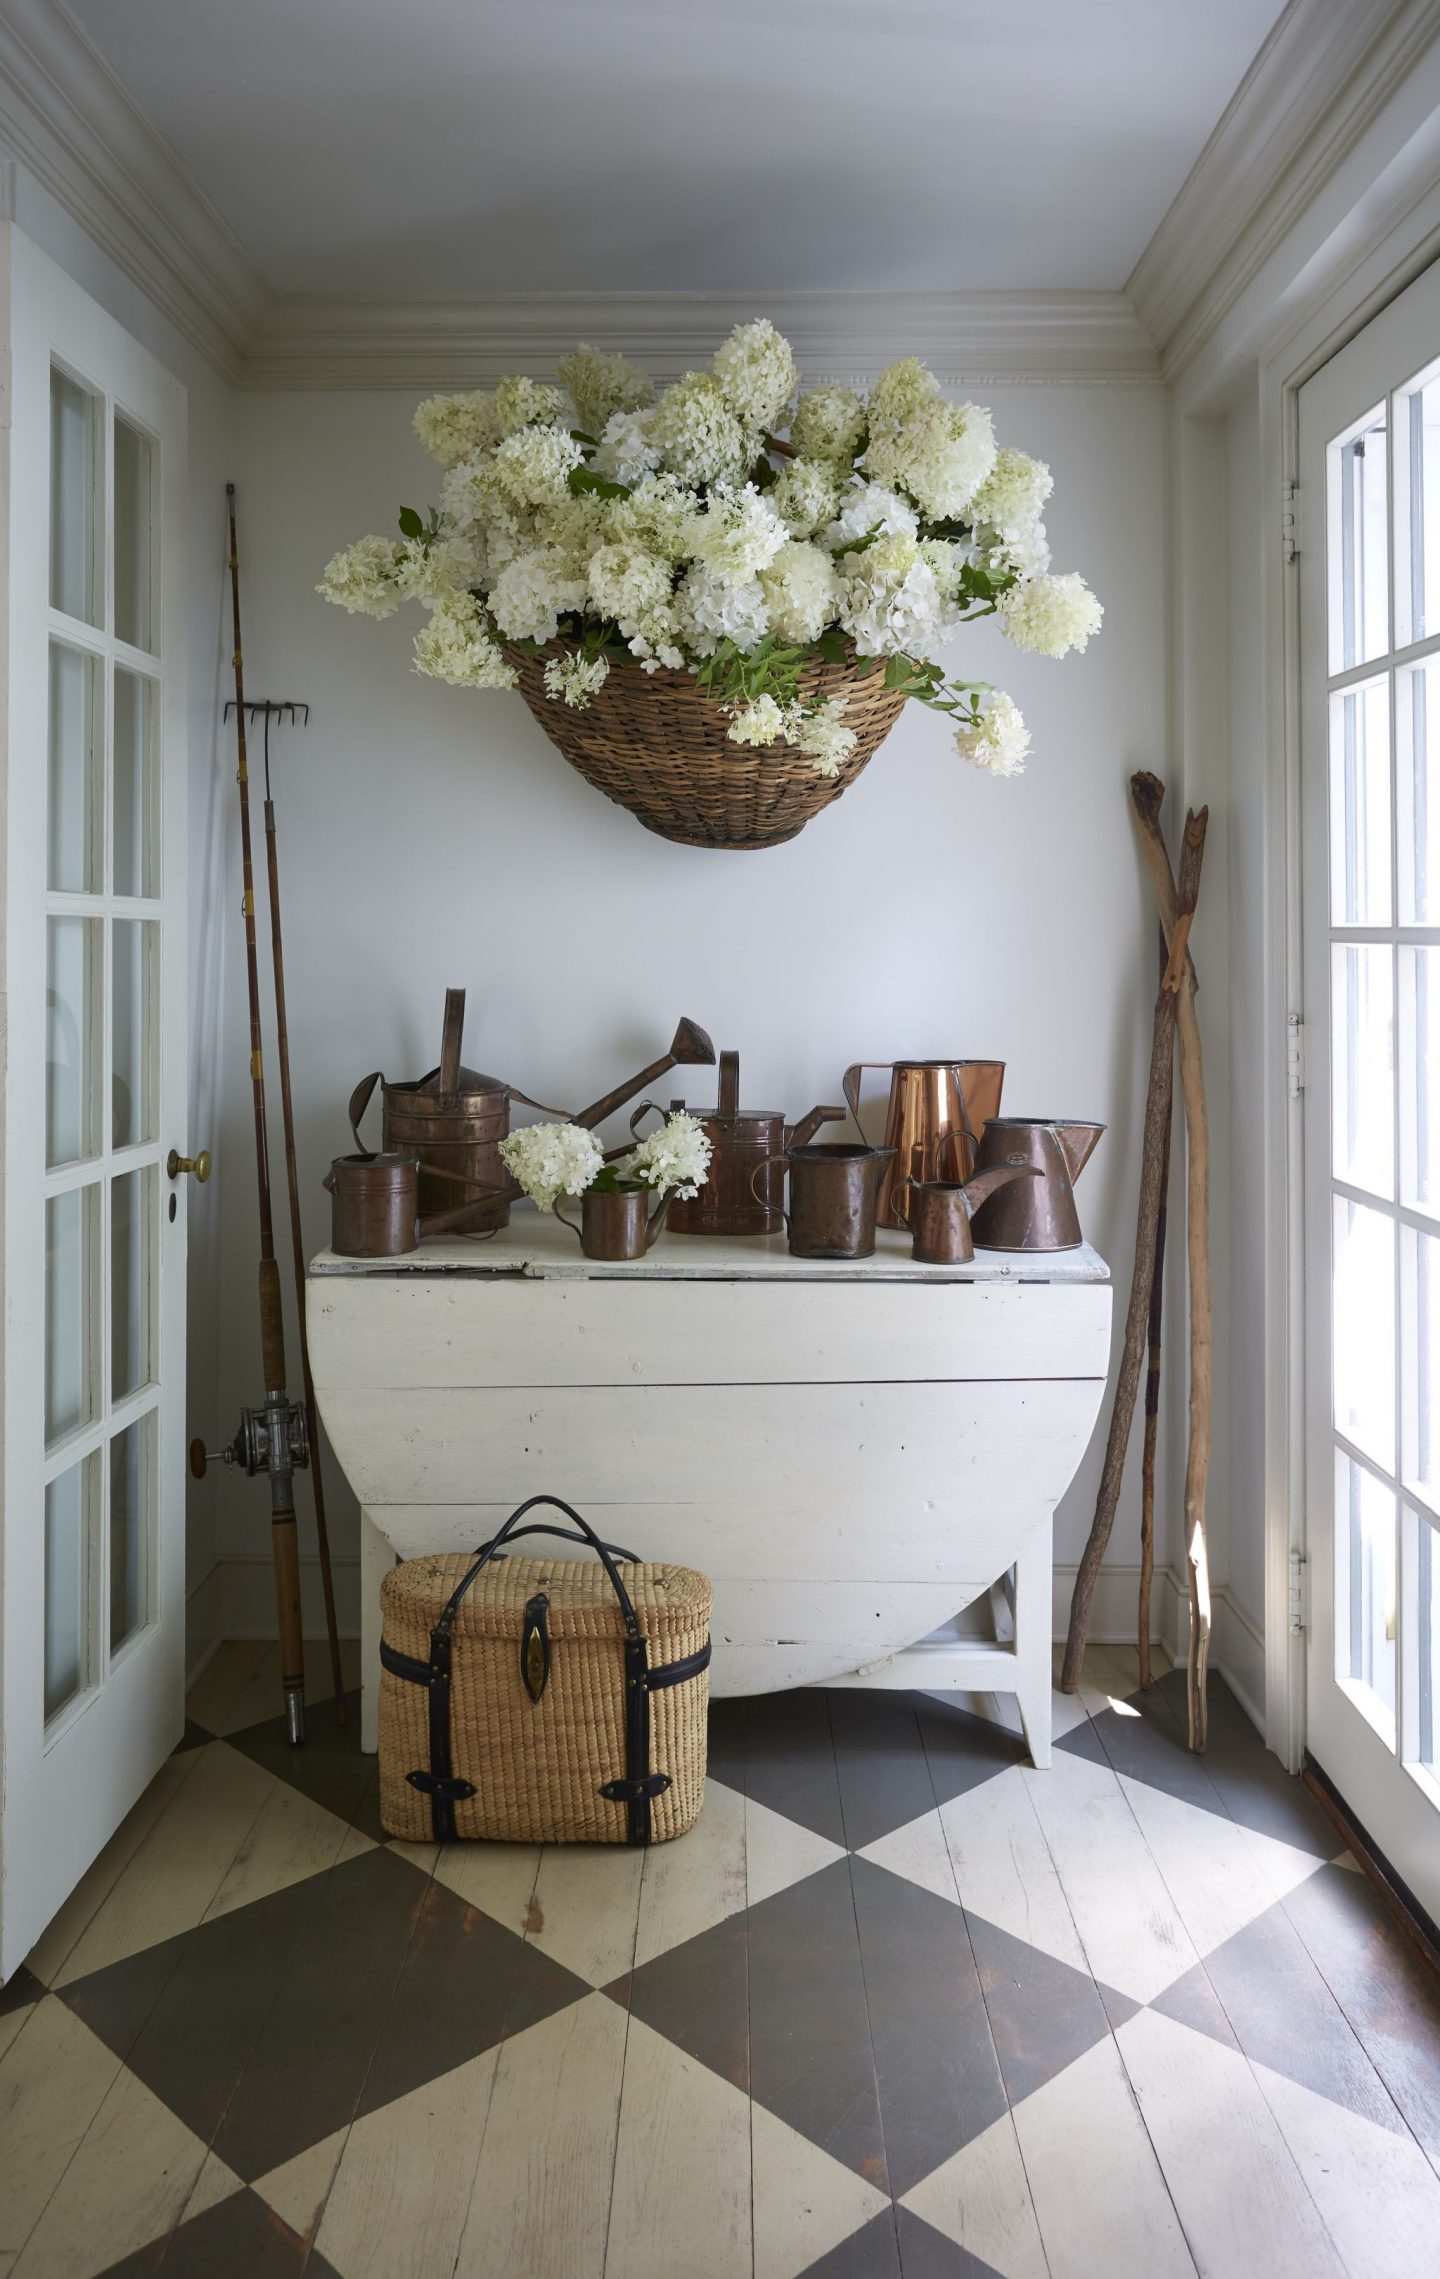 Nora Murphy country house entry with checkerboard pattern flooring, dropleaf table, and huge basket of hydrangea and collection of watering cans. Nora Murphy Country Style to Inspire! #noramuphy #countrystyle #entry #countryhouse #americanfarmhouse #farmhousestyle #rusticdecor